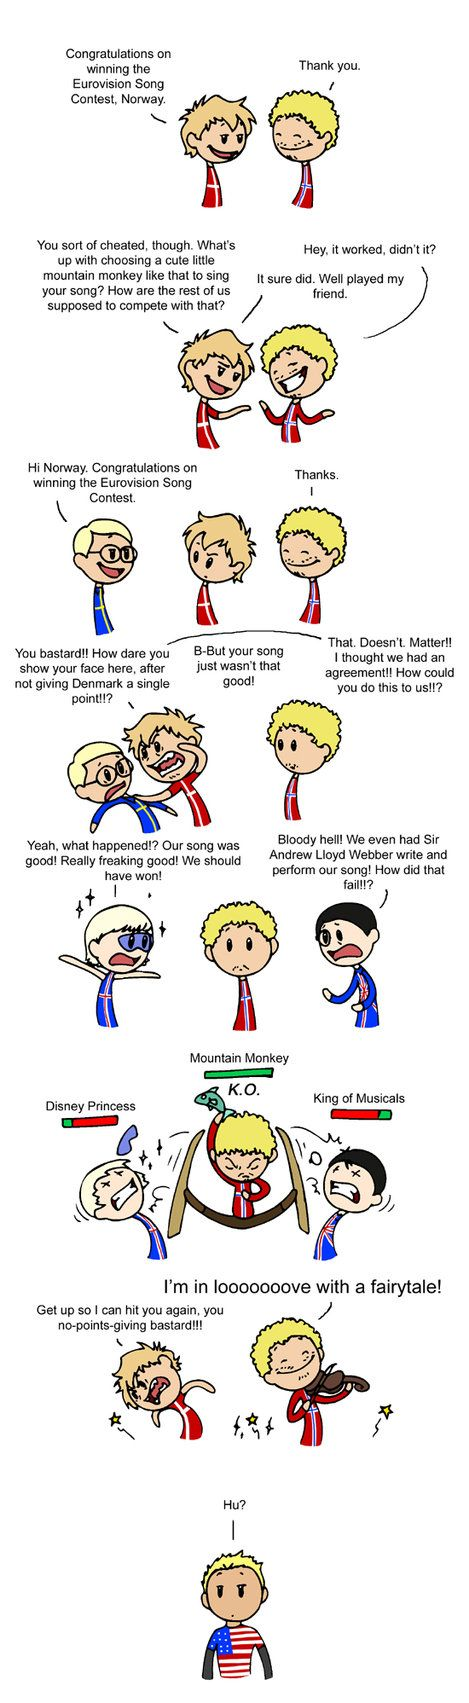 Eurovision and Scandinavia, and hahahaha, the american! xD